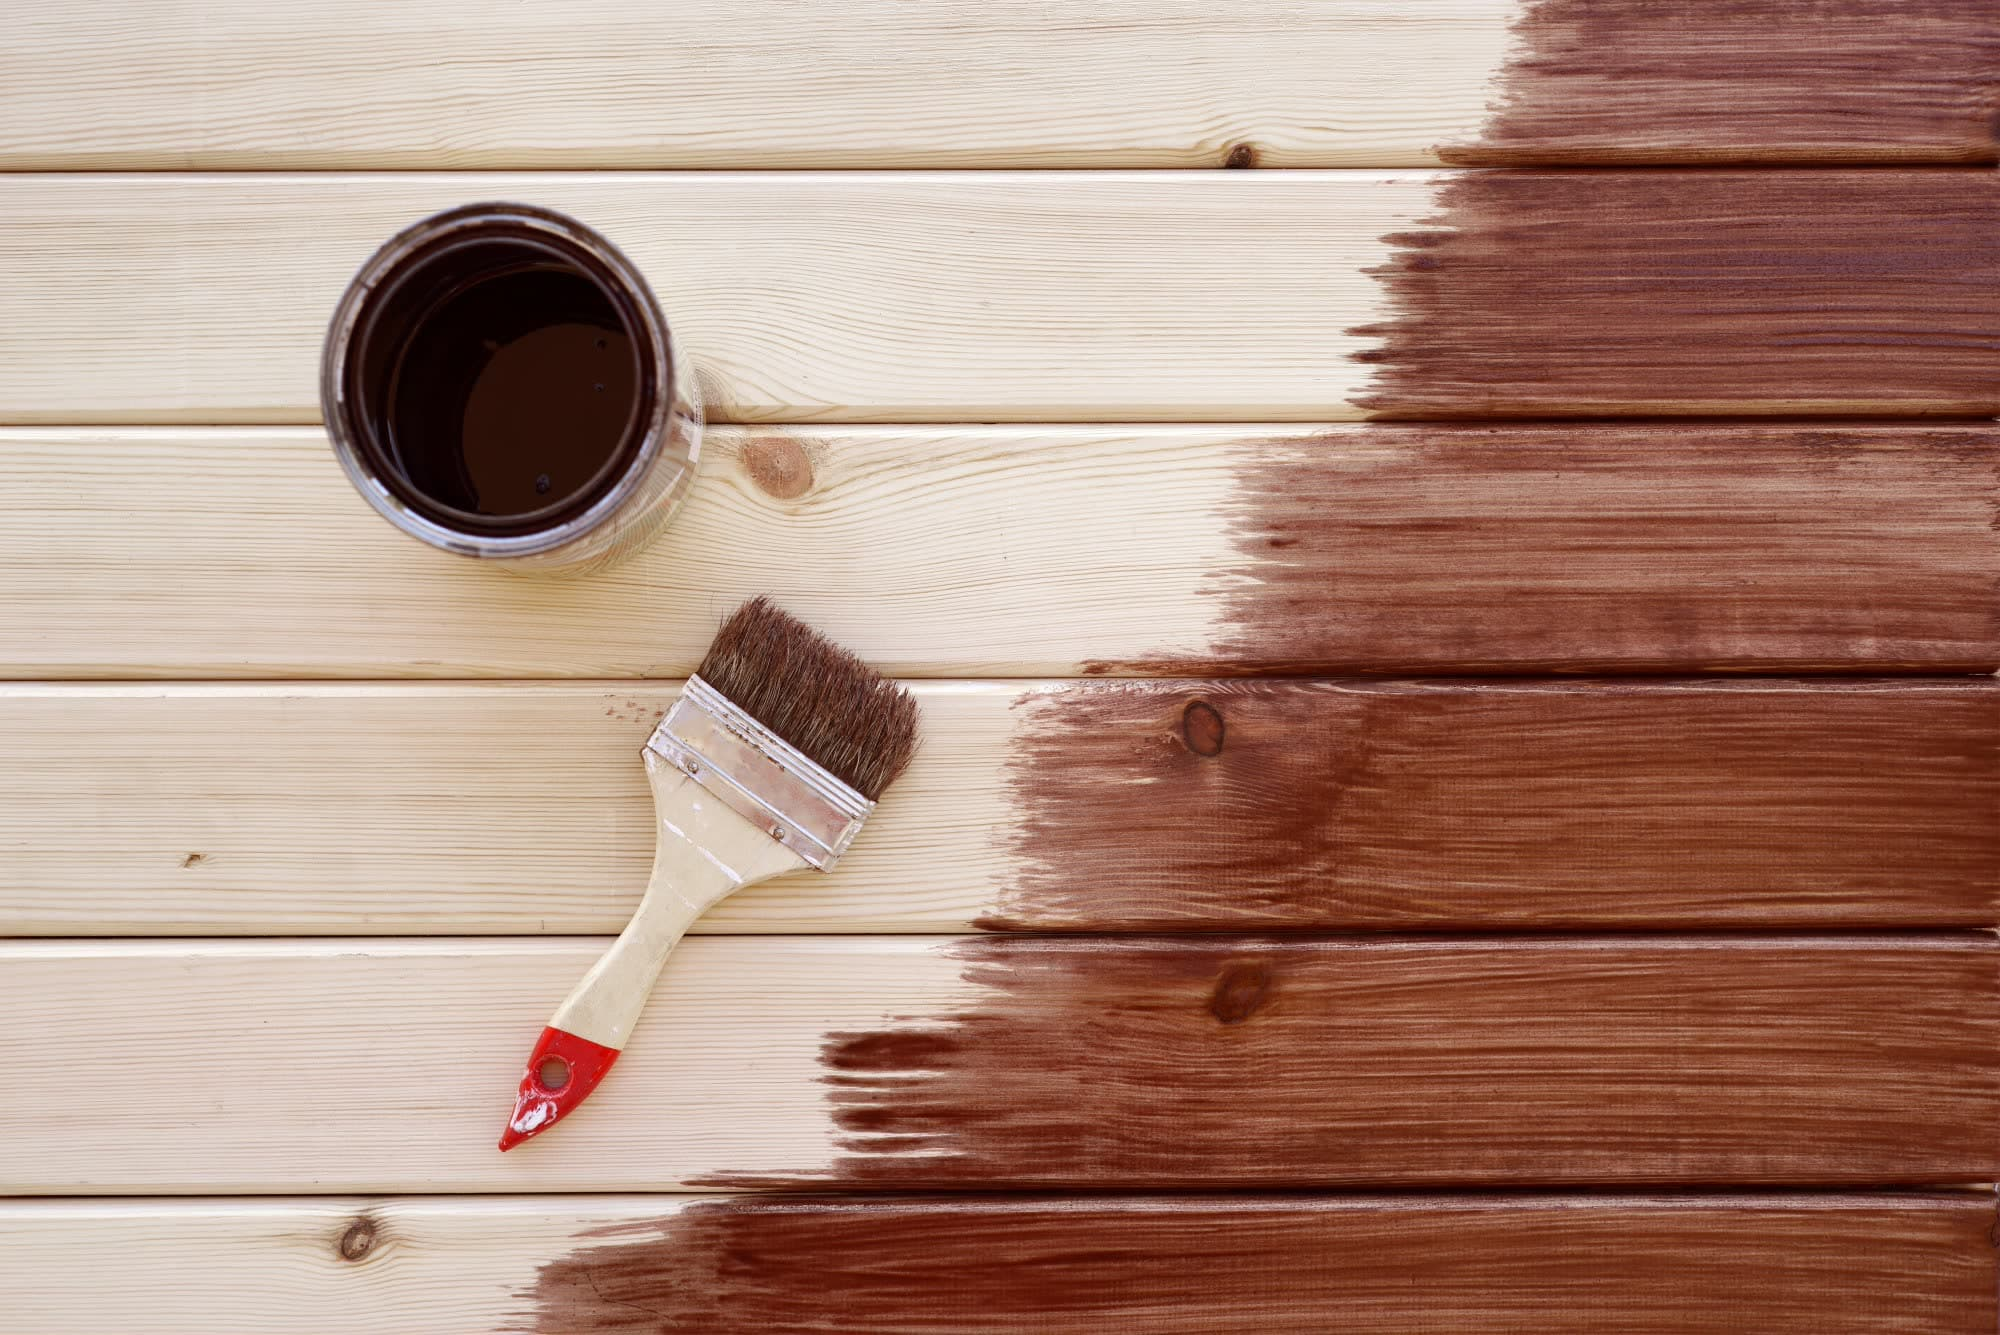 Painting a wooden shelf using1-